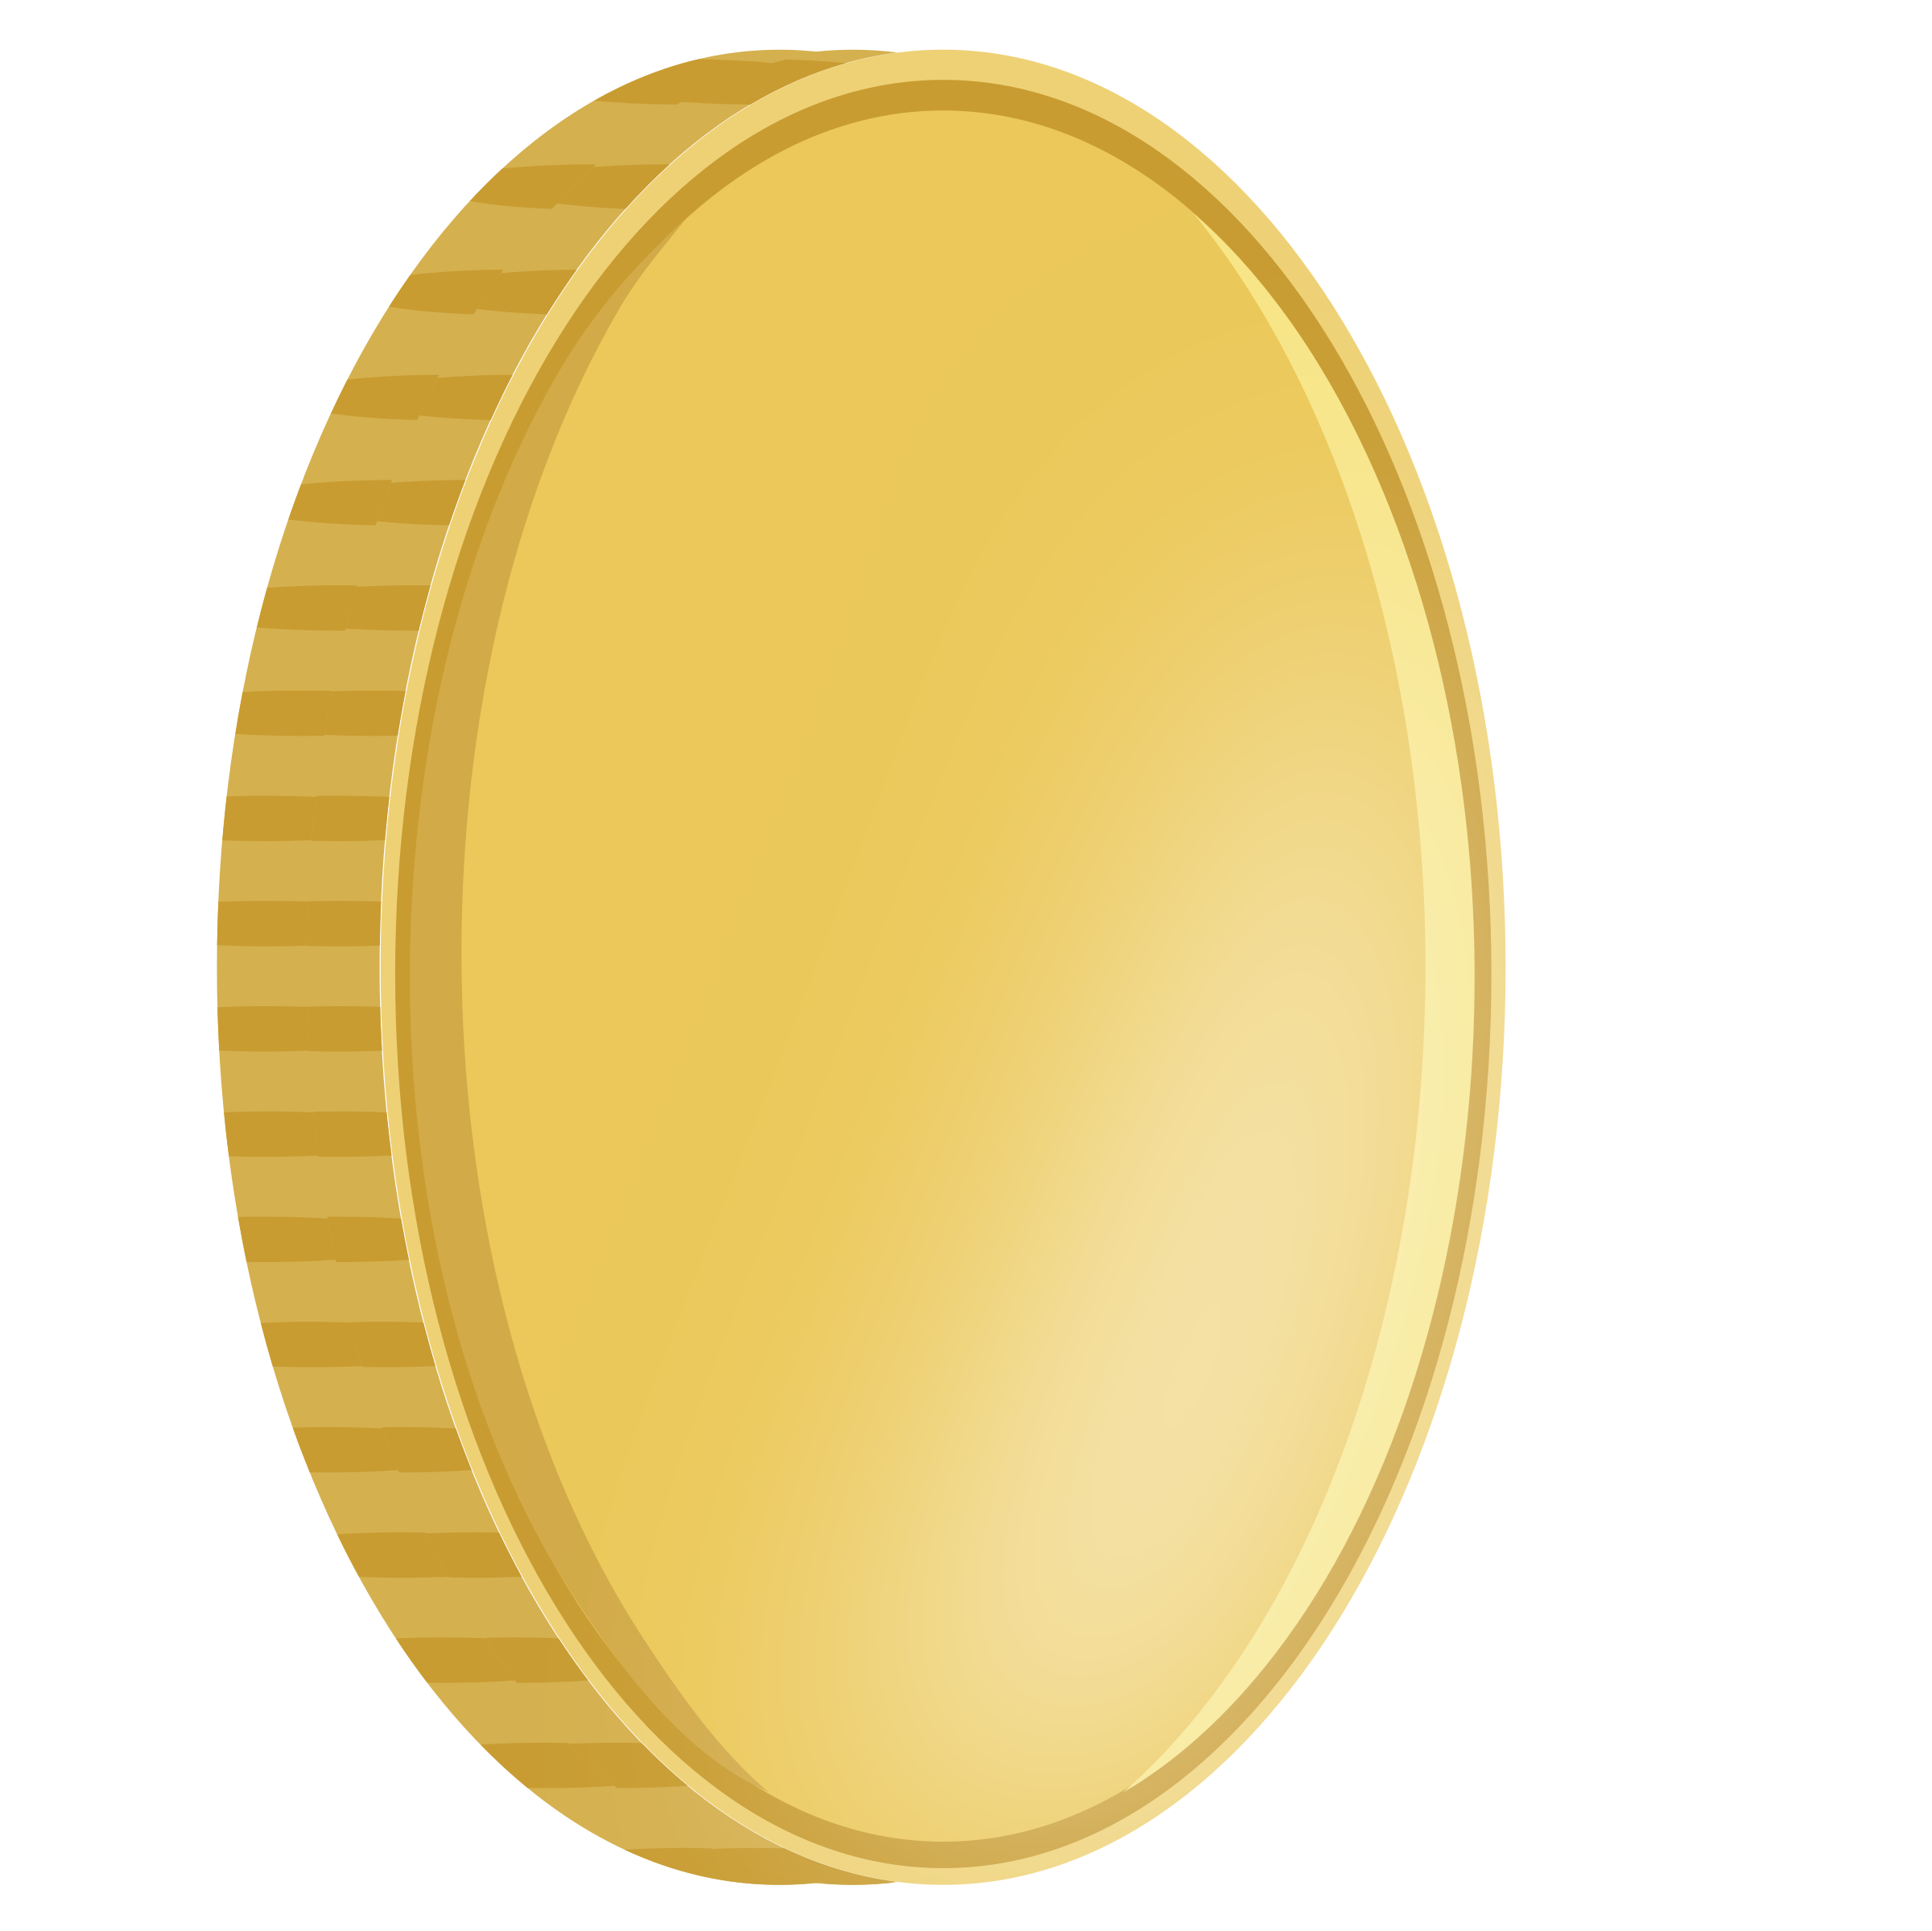 Coin clipart cartoon. Spinning big image png